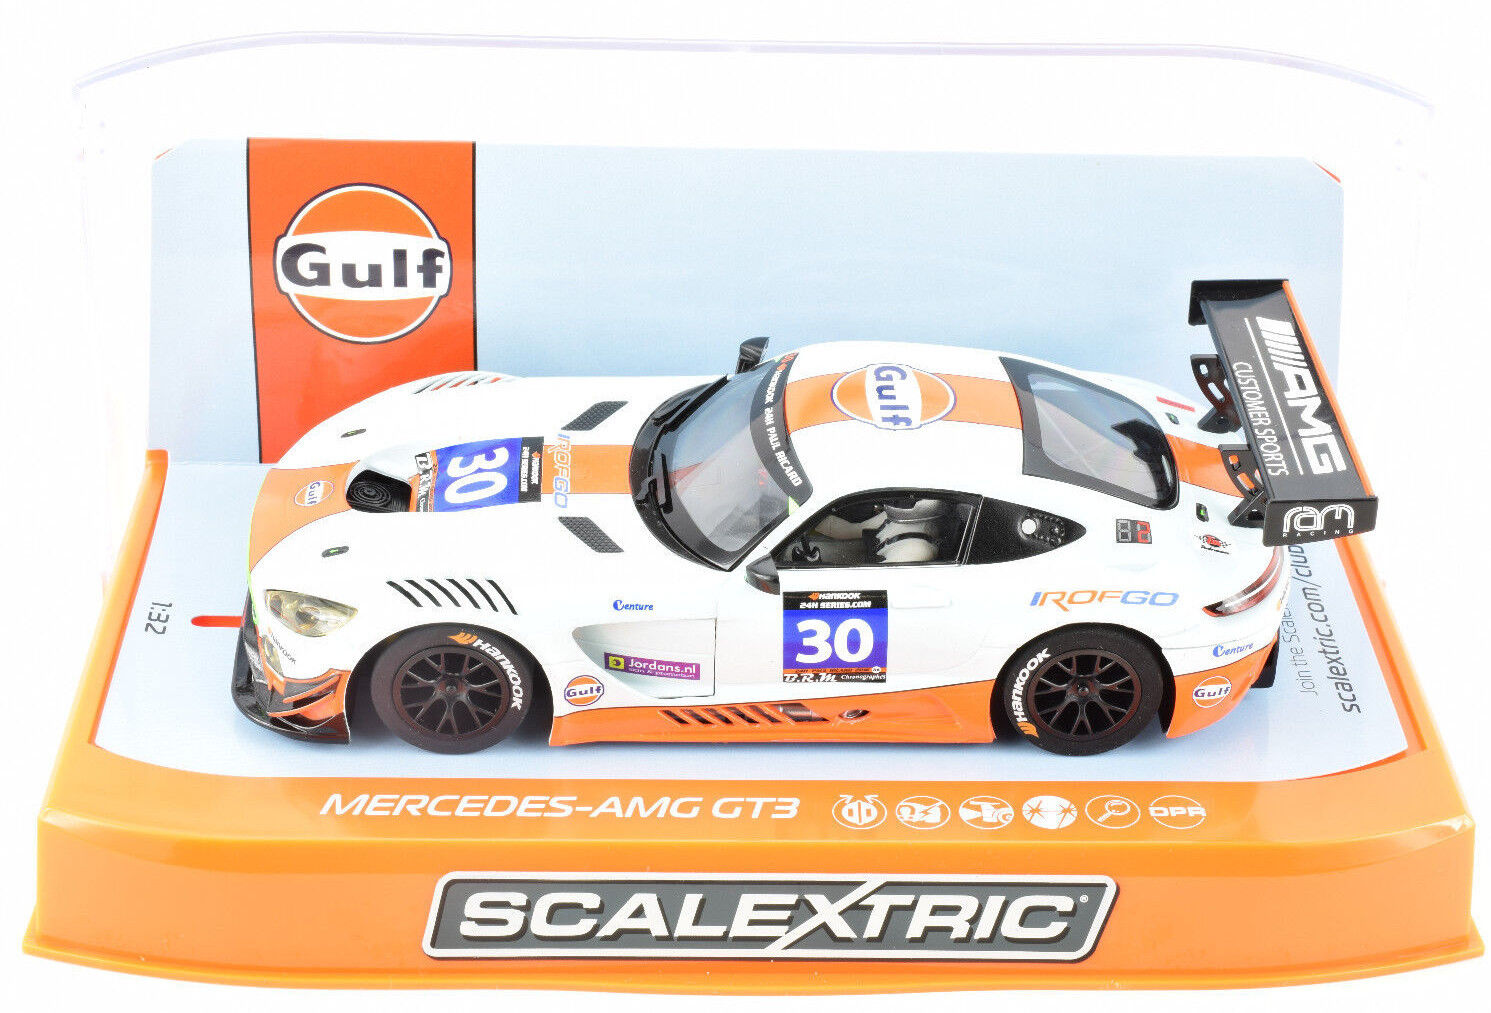 Scalextric  Gulf  Mercedes AMG GT3 DPR W  Lights 1 32 Scale Slot Car C3853